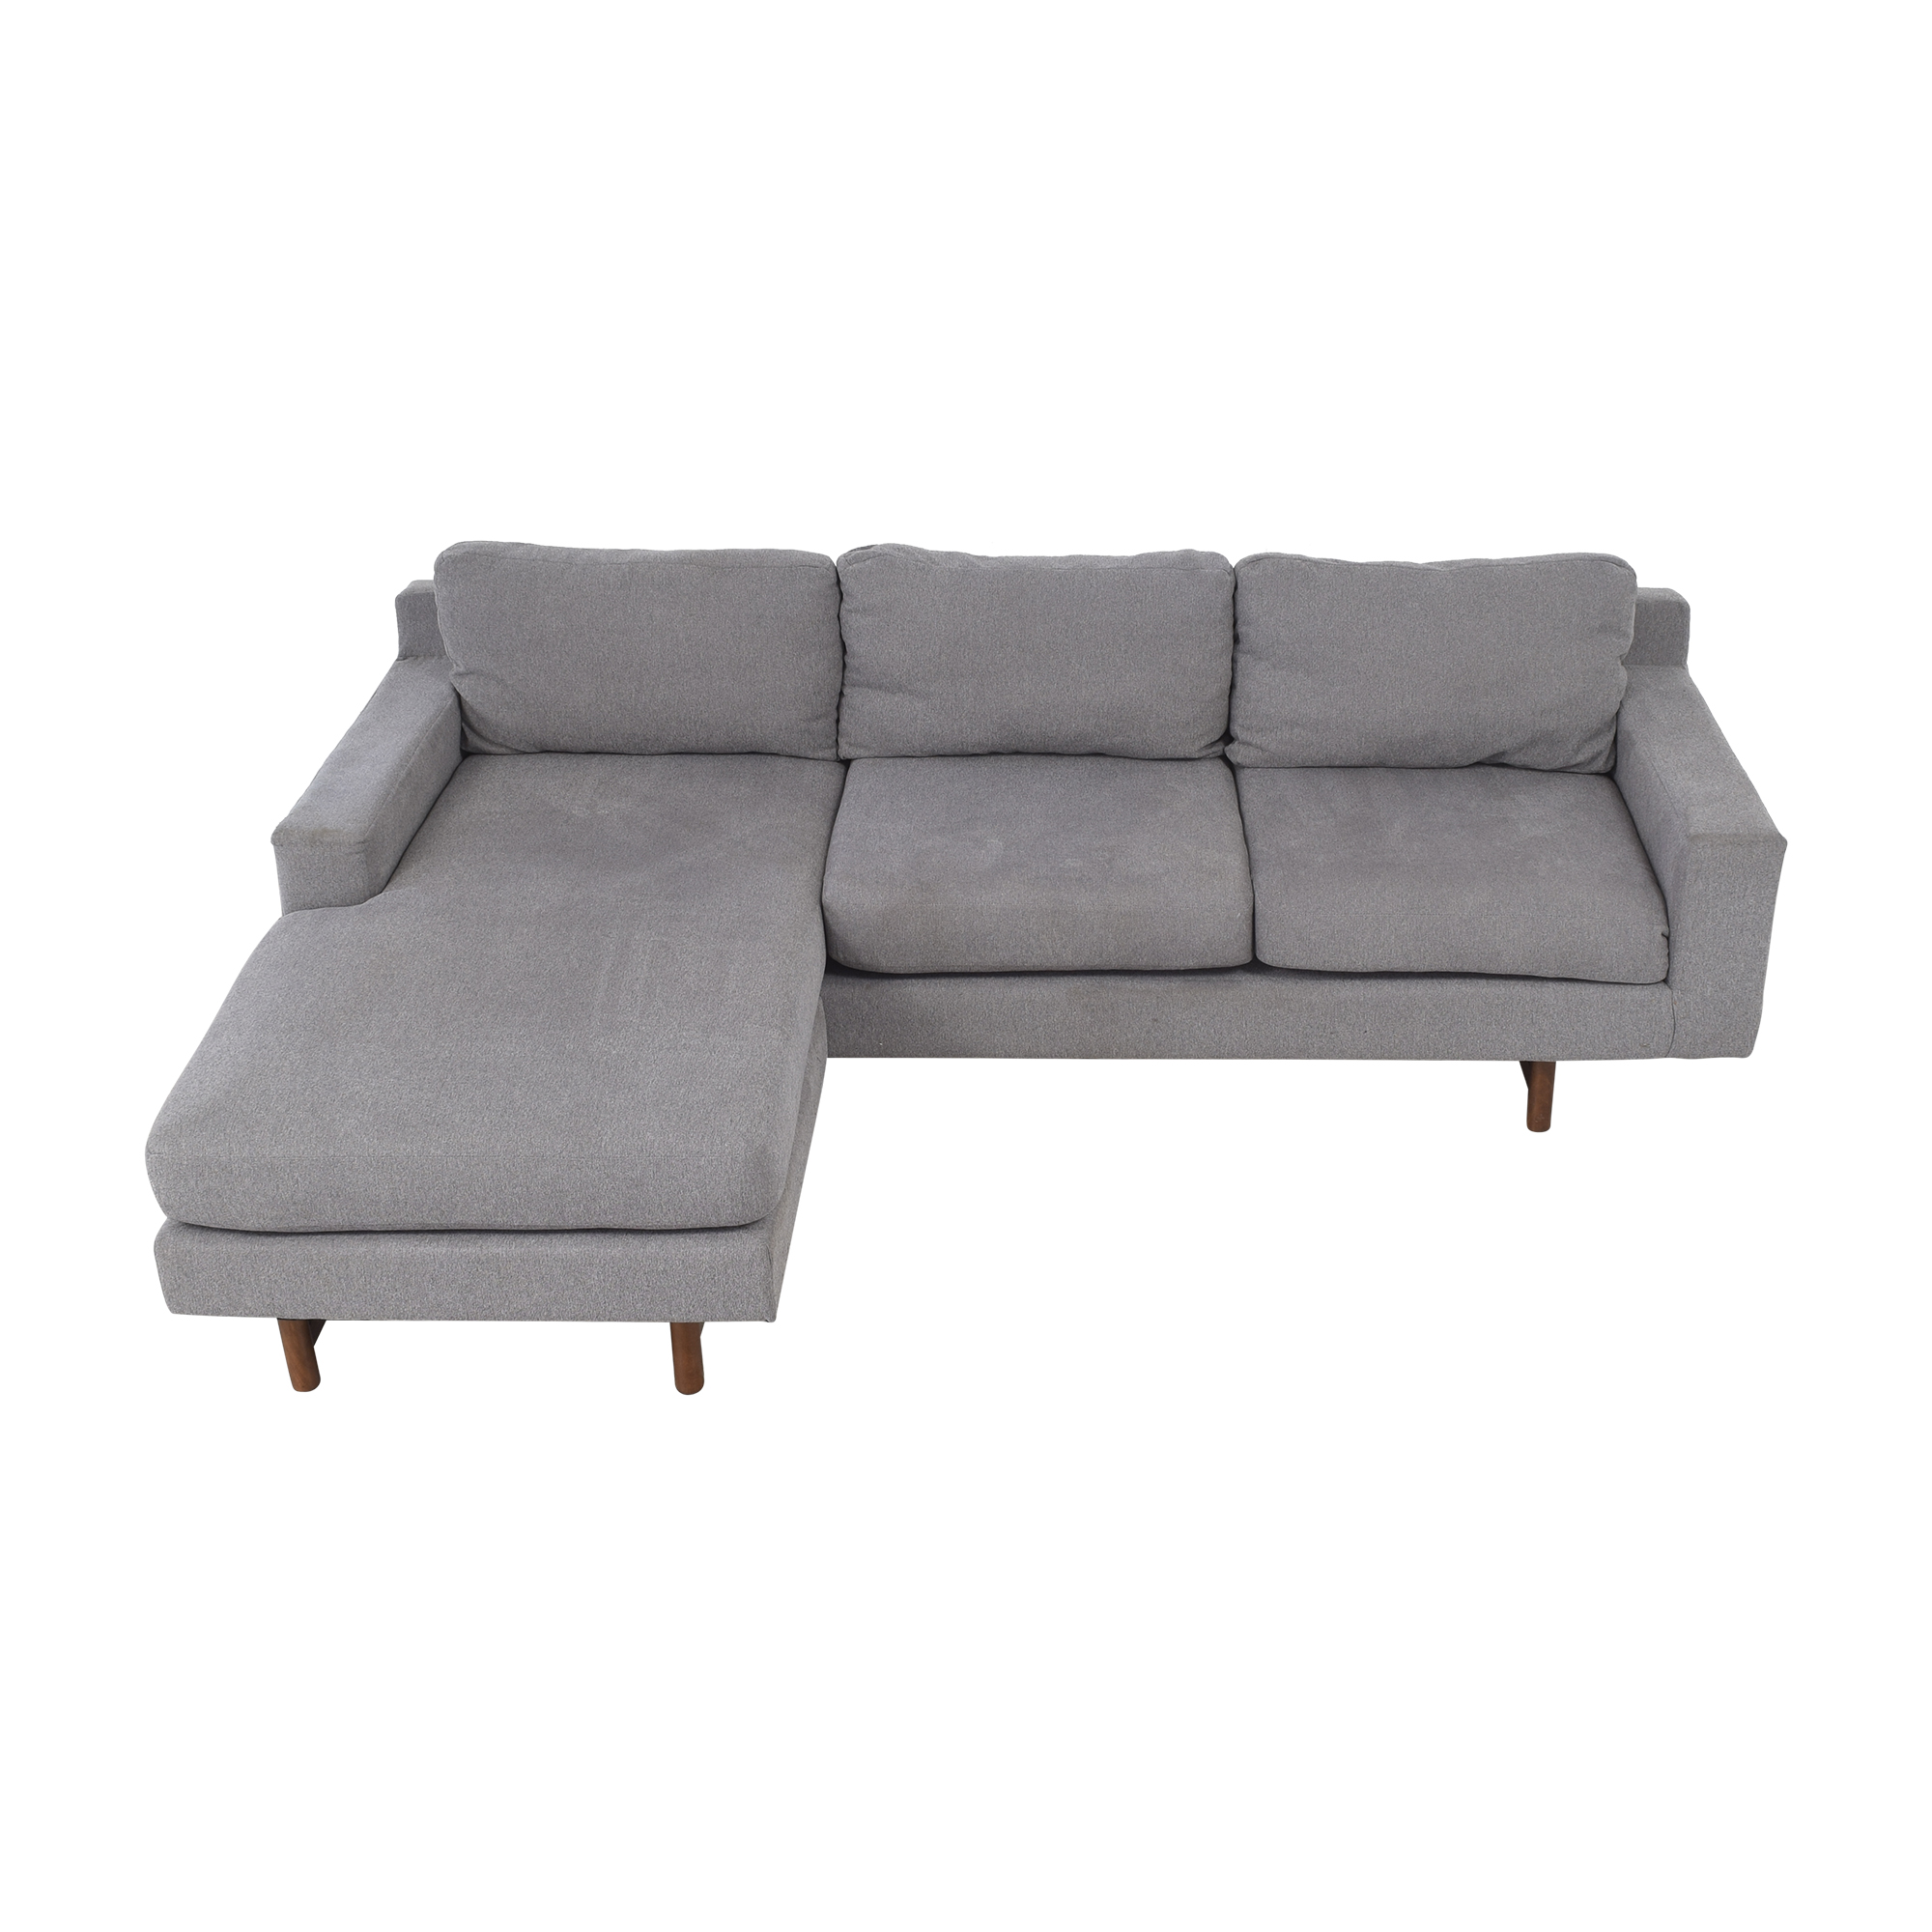 West Elm West Elm Eddy Reversible Sectional gray and brown